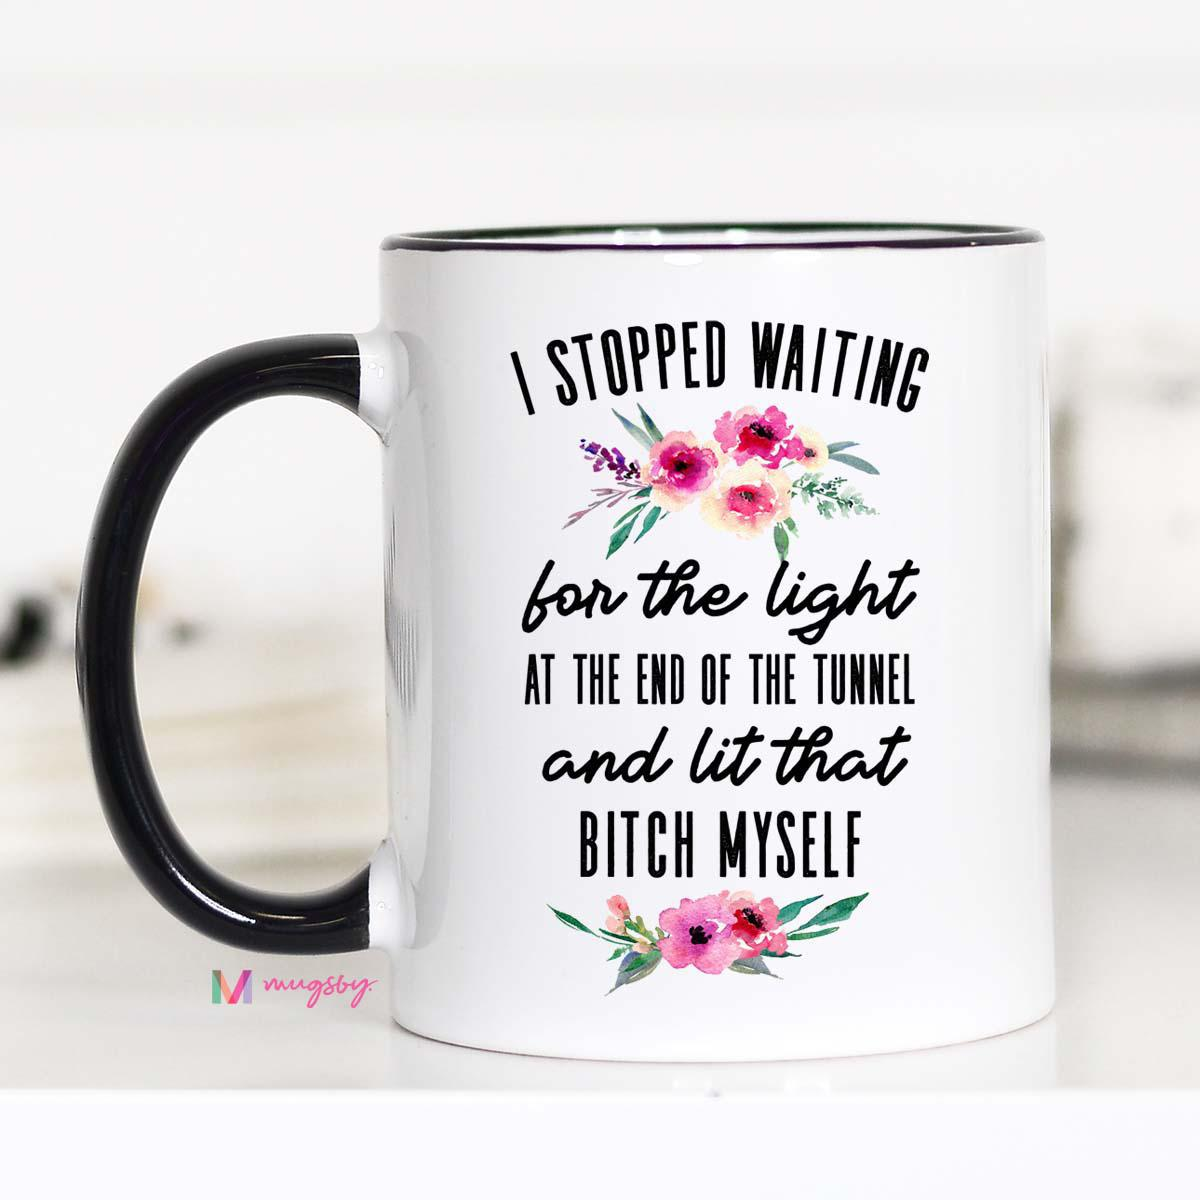 I Stopped Waiting For the Light At the End of the Tunnel Mug